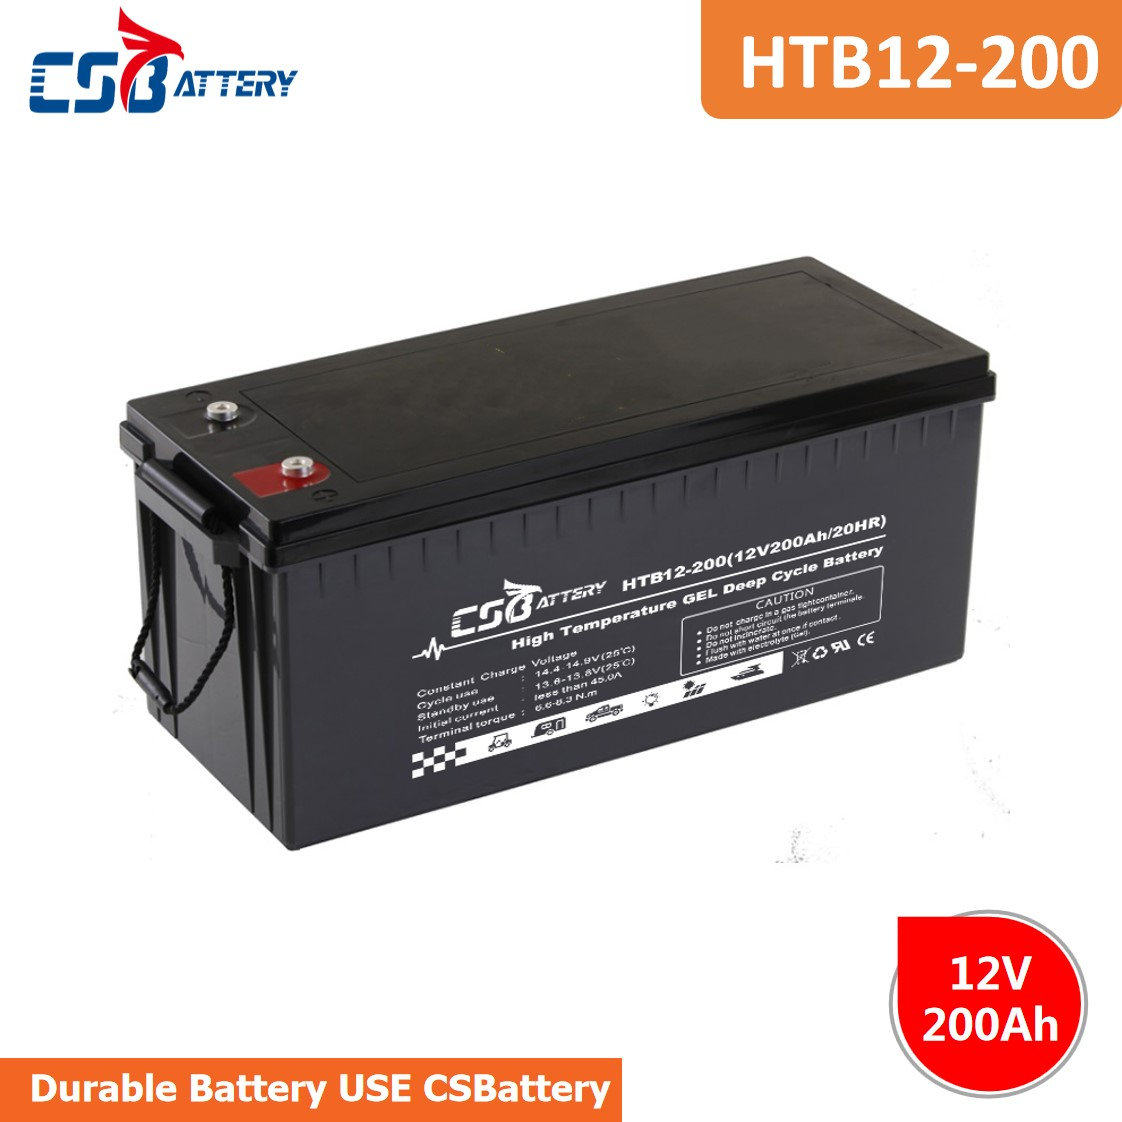 CSBattery 12V200AH Long life GEL Battery for marine/Automotive/motorcycle/bicycle/UPS/computer-backup-power